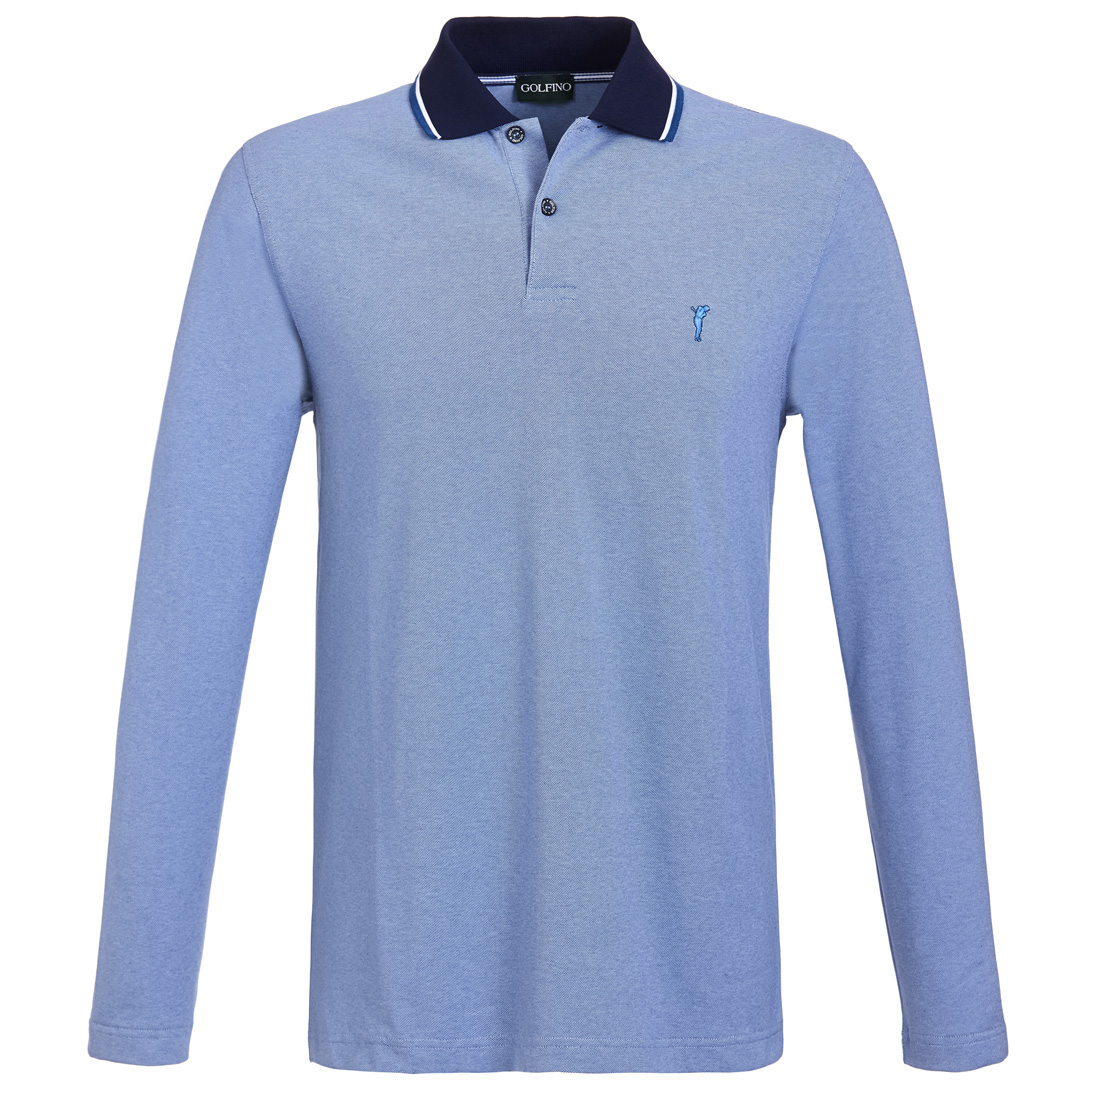 Langarm Herren Funktions-Golfpolo Brushed mit Sun Protection